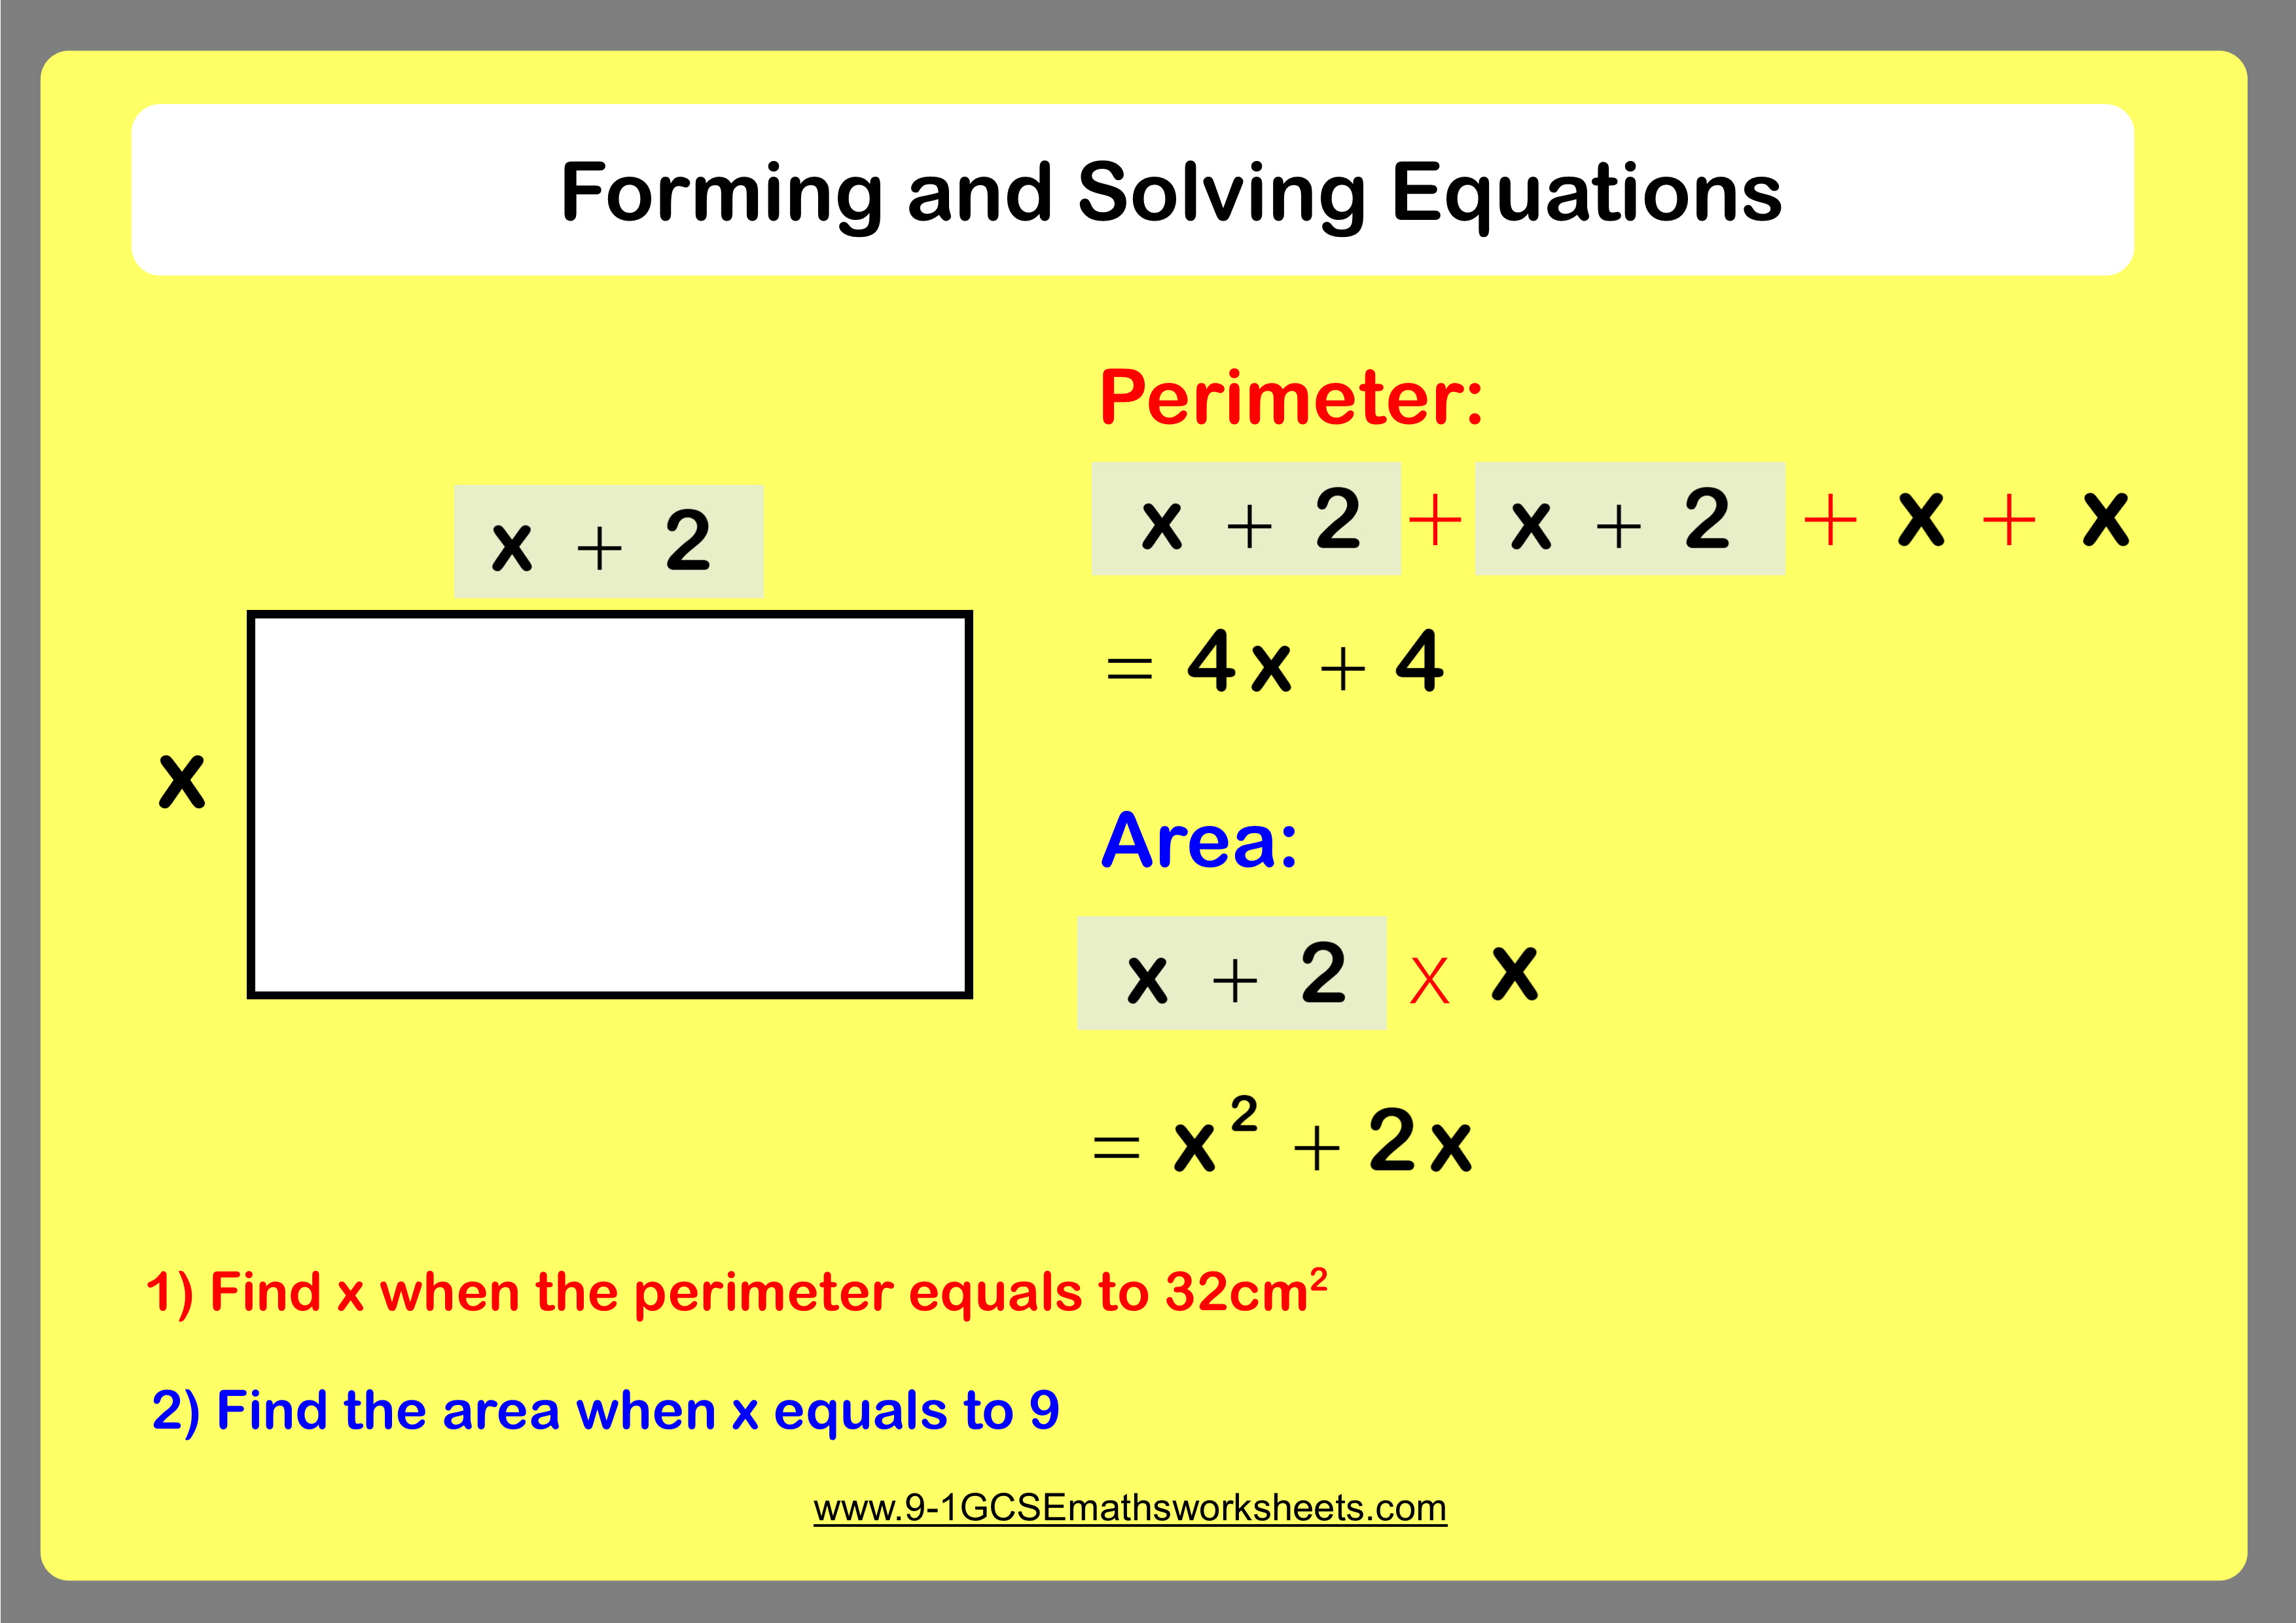 Forming Solving Equations Worksheet Practice Questions